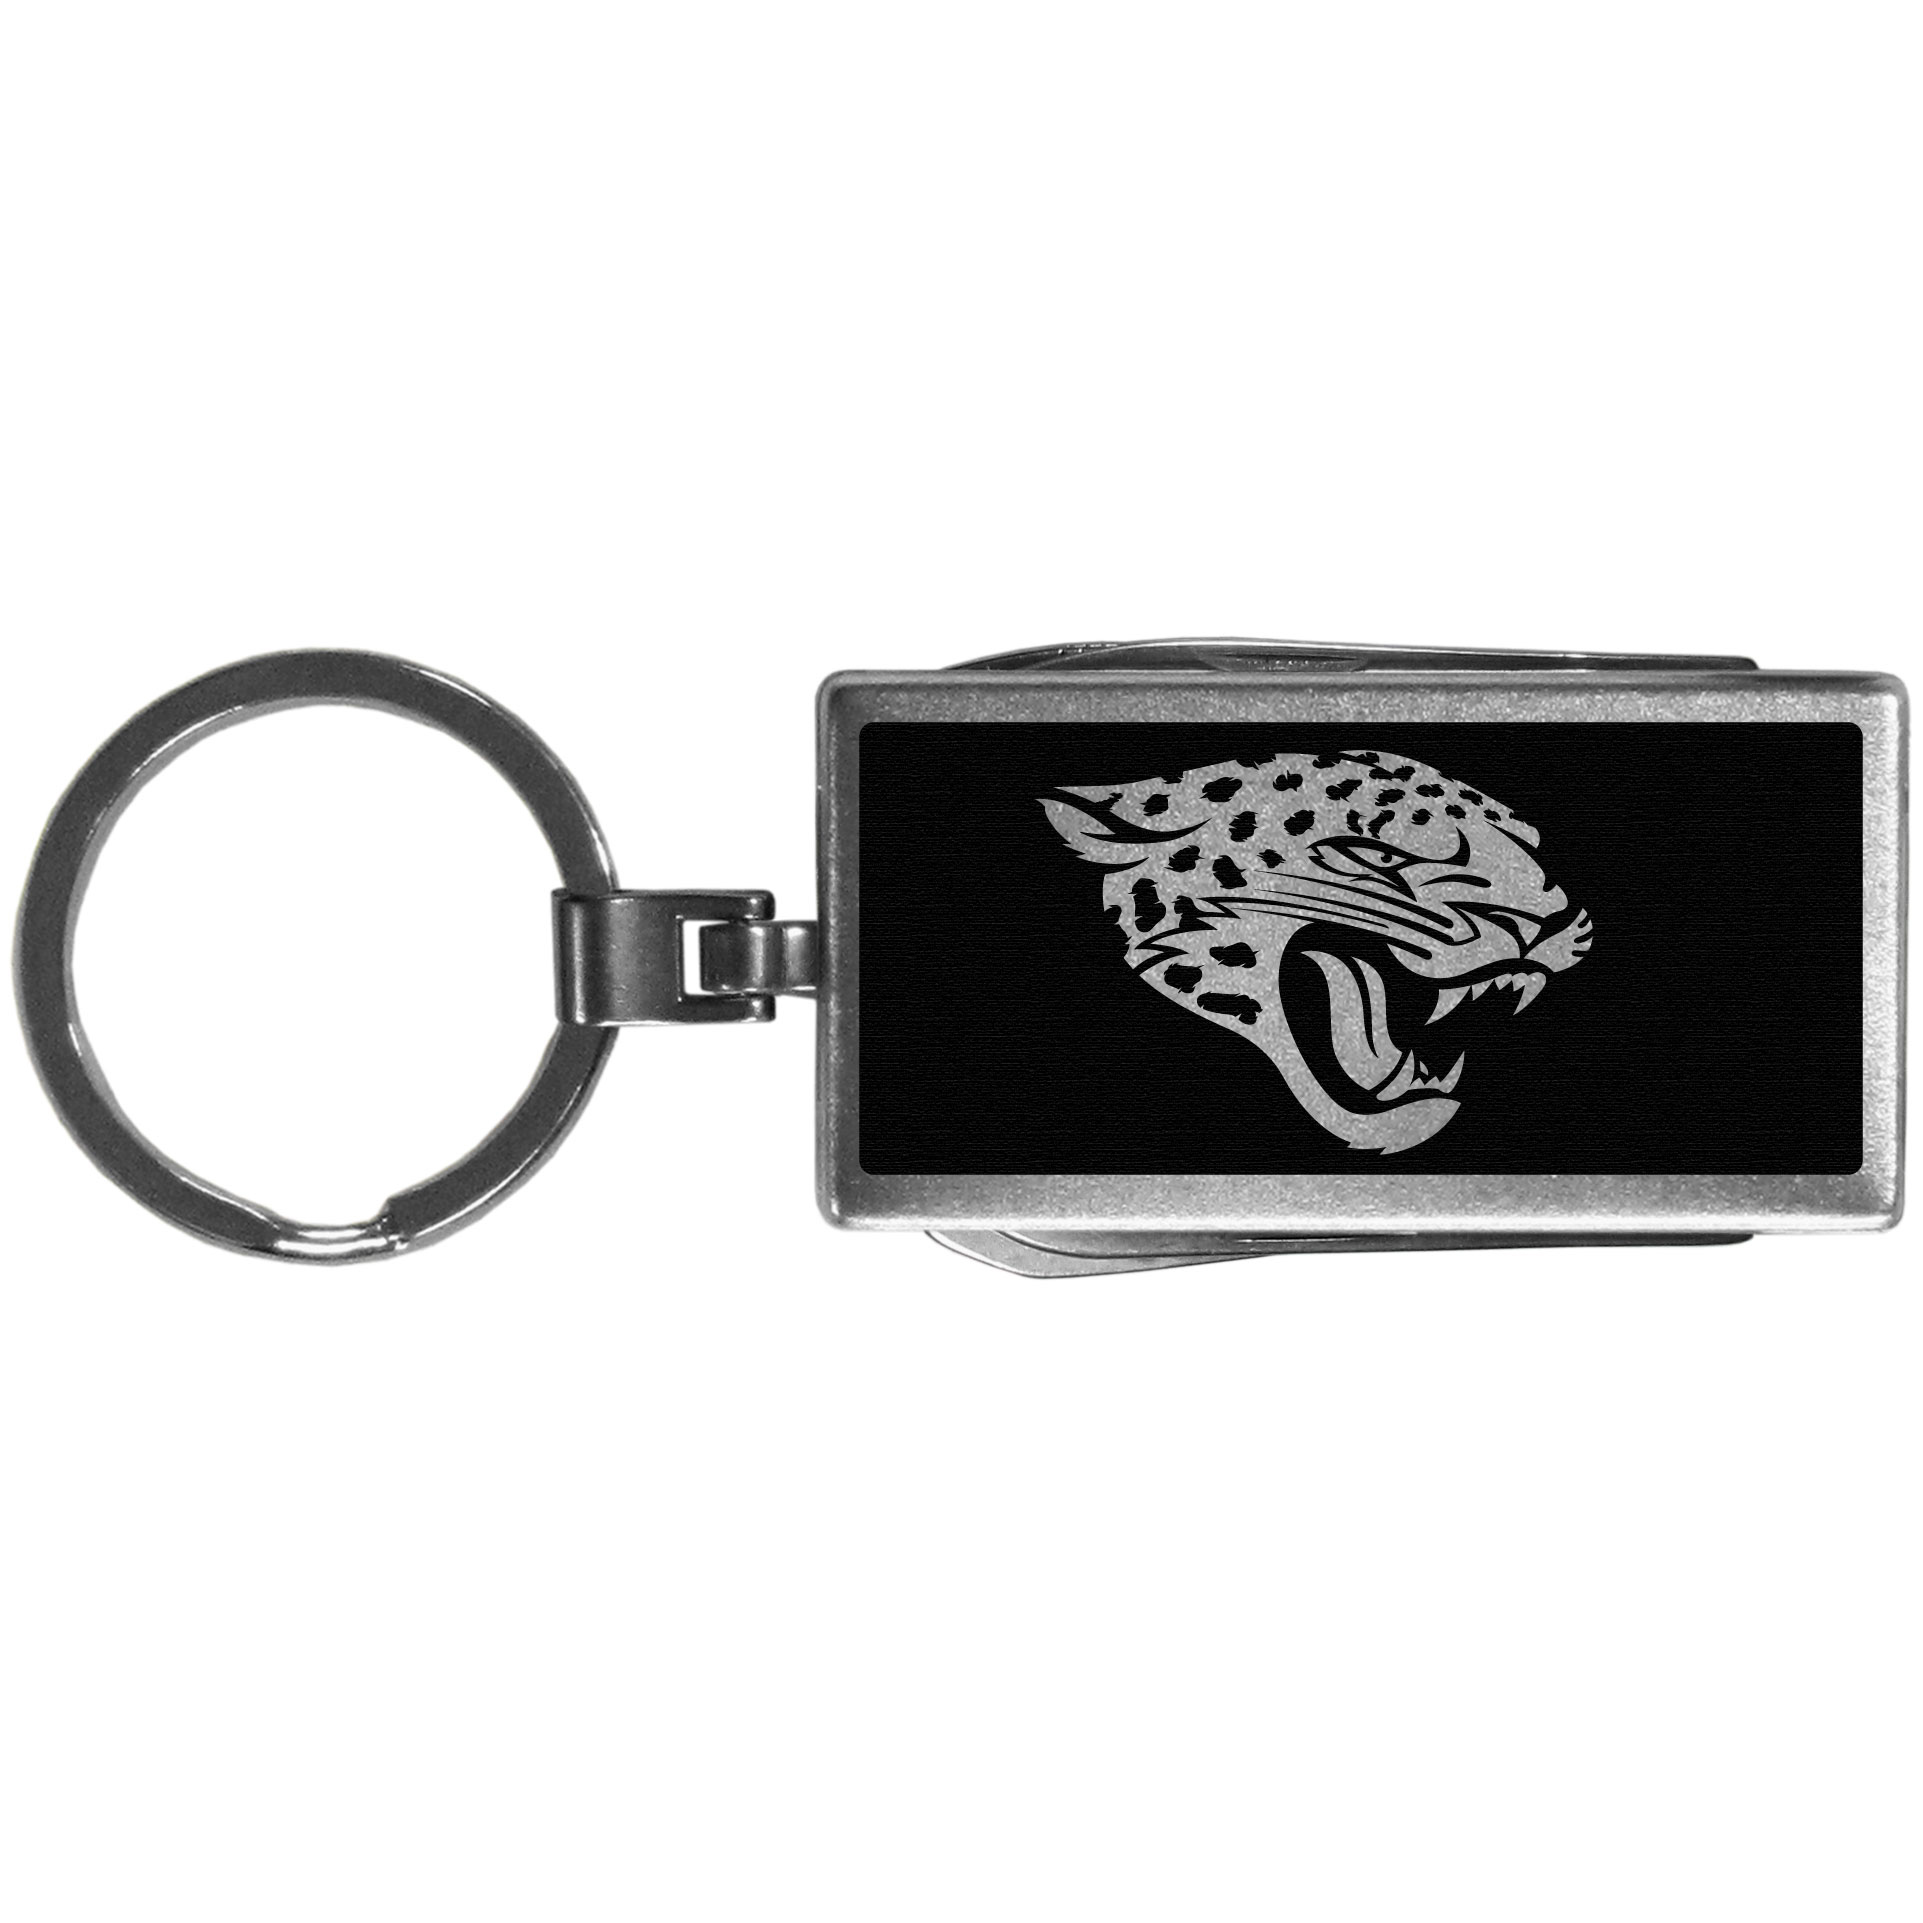 Jacksonville Jaguars Multi-tool Key Chain, Black - Be the hero at the tailgate, camping, or on a Friday night with your Jacksonville Jaguars Multi-Tool Keychain which comes complete with bottle opener, scissors, knife, nail file and screw driver. Be it opening a package or a beverage Siskiyou's Multi-Tool Keychain goes wherever your keys do. The keychain hangs at 4 inches long when closed.